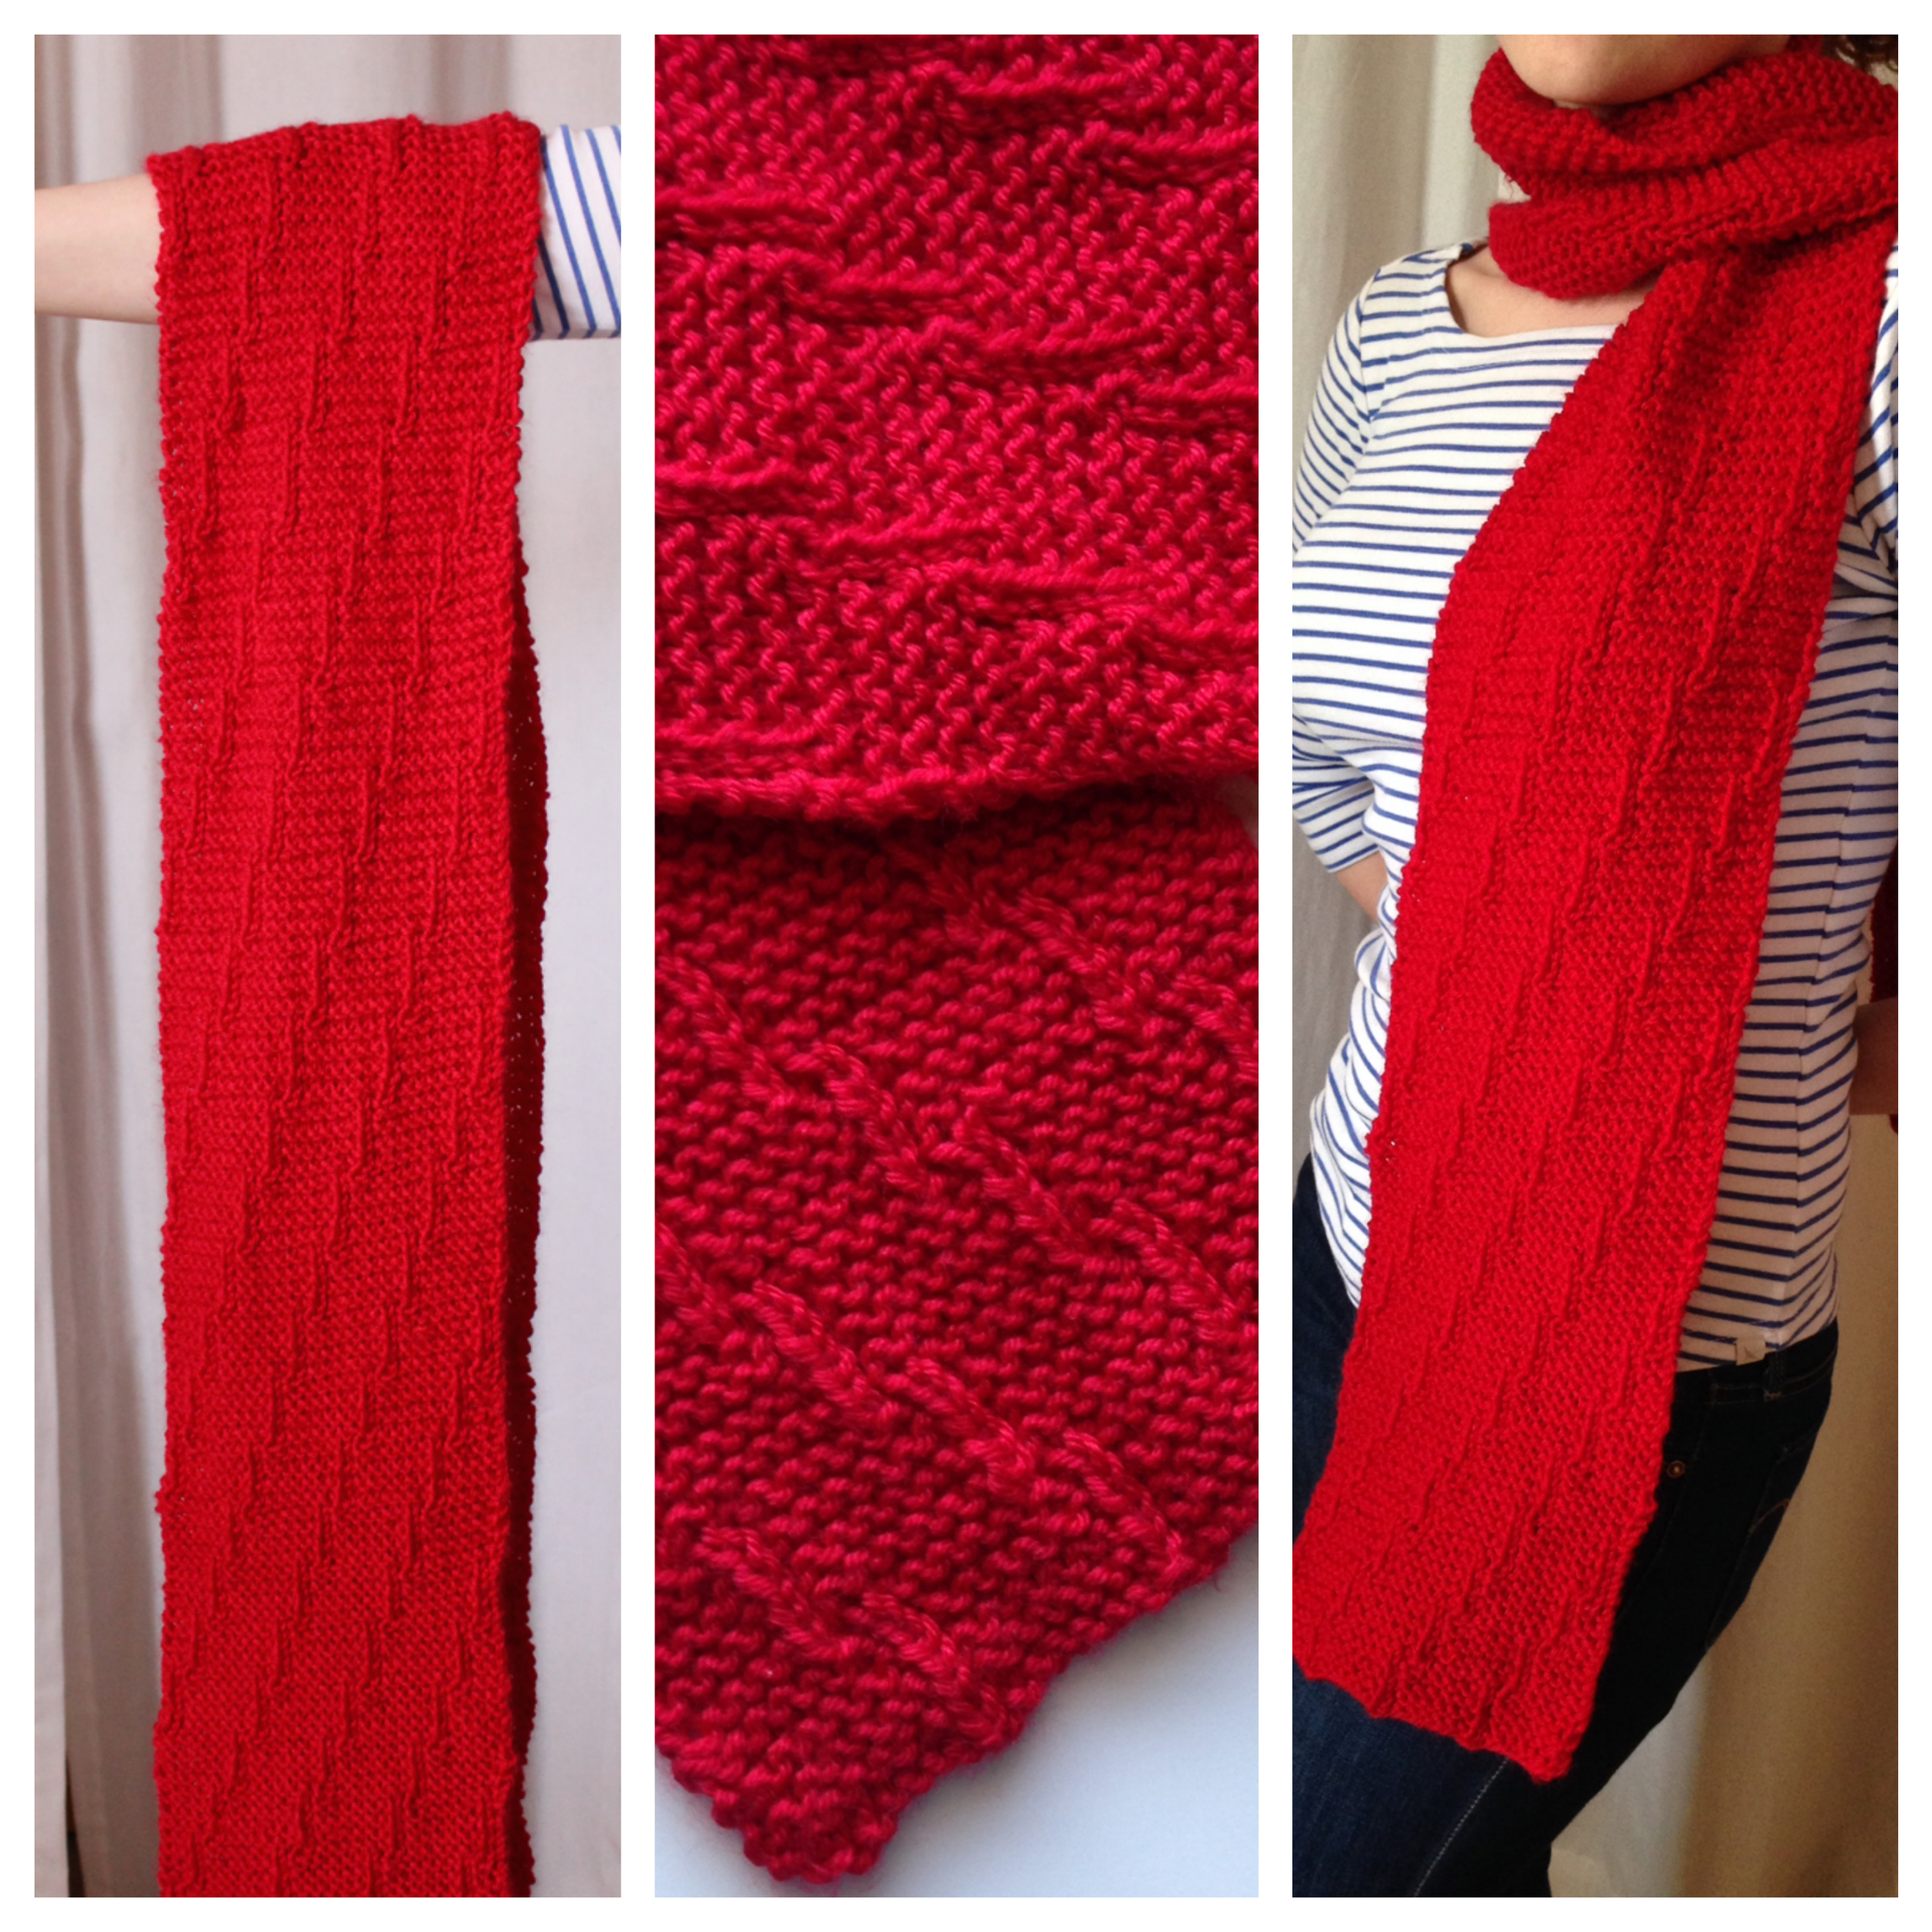 Altimeter Scarf   This pattern is available as a  free Ravelry download   As foster care students lift off into their college careers and their lives as adults, they benefit from the support and encouragement offered by knitters who donate to the Red Scarf Project. Help them soar with a scarf that serves as a tangible expression of care. For more information on donating to the Red Scarf Project, go to  http://www.fc2success.org/   This scarf is an easy knit and is completely reversible, using strategically placed purl stitches on each row of garter stitch to give the illusion of upward motion.  US Size 8 needles and worsted weight yarn.